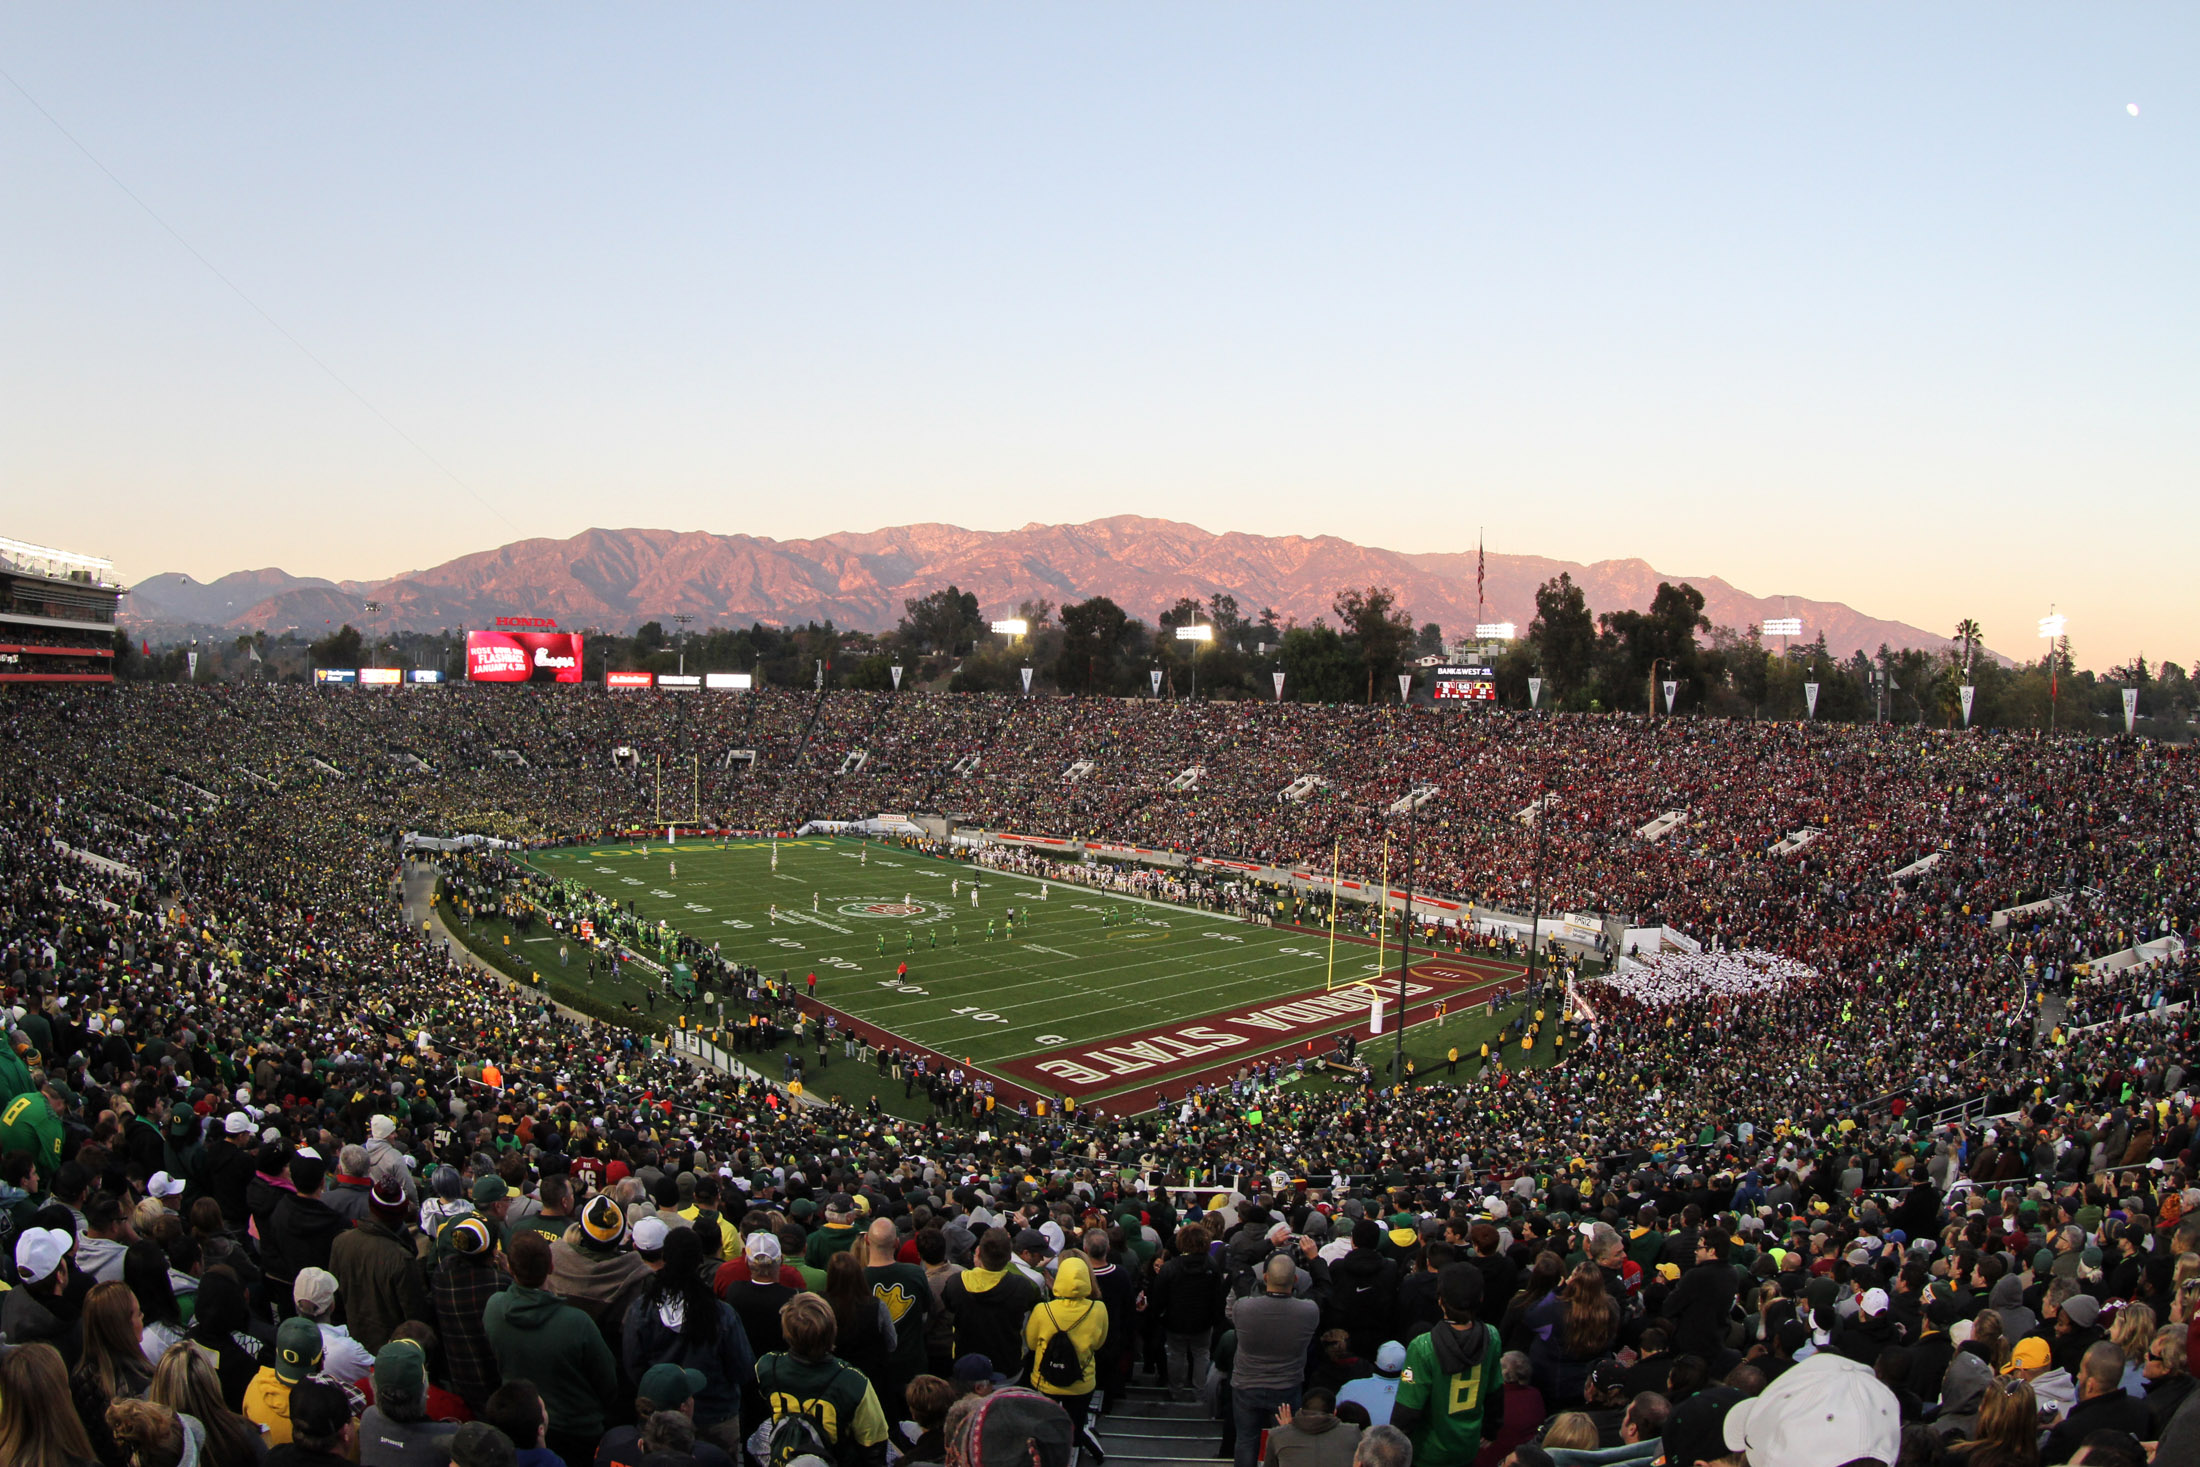 Florida State vs Oregon Ducks at the Rose Bowl in College Football Playoff - Stadium view